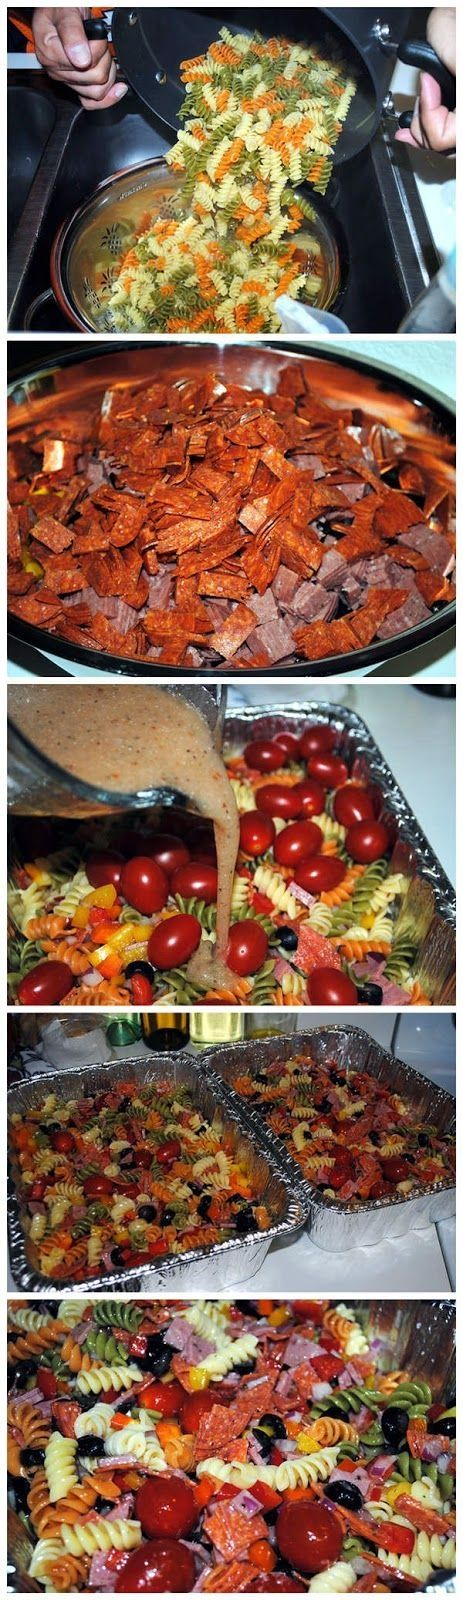 Pasta Salad Ingredients 2 – 7 oz packages of Hormel Pepperonis, cut in half and then in quarters 1 package – Cotto Salami, chopped (or any salami you like) 2 – 12 oz boxes of Rotini Pasta (I used T… by Gloria Garcia